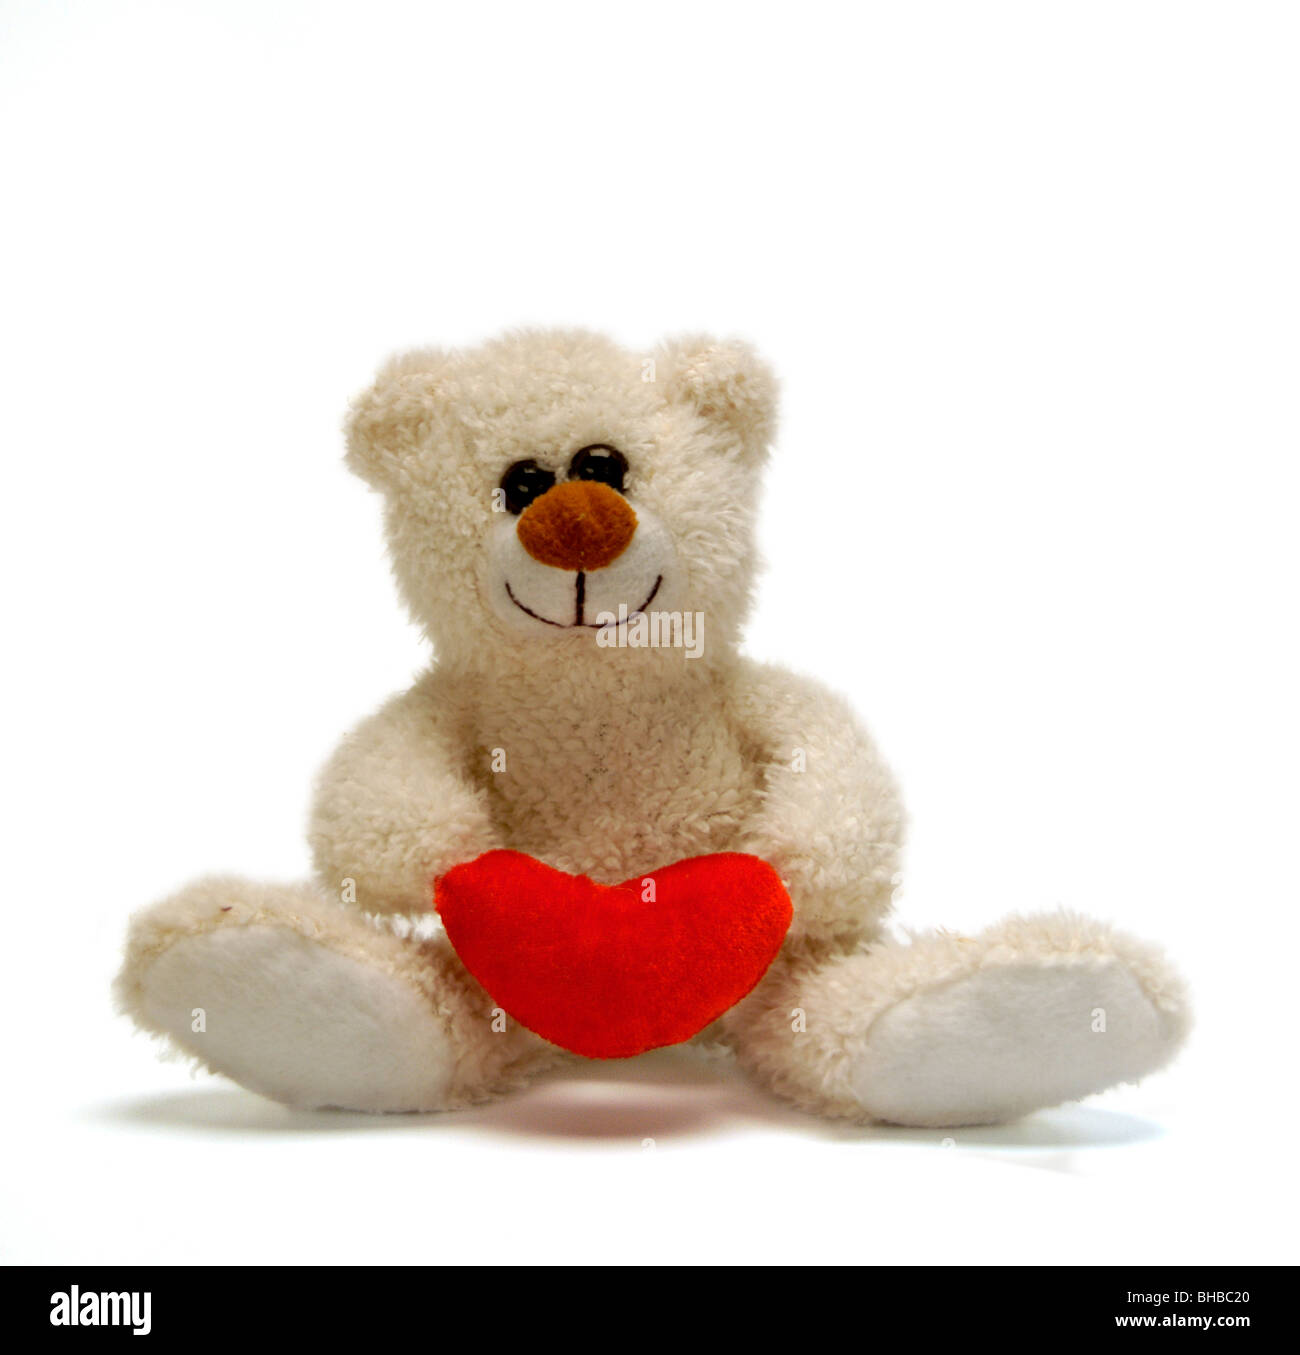 Ours holding love heart Photo Stock